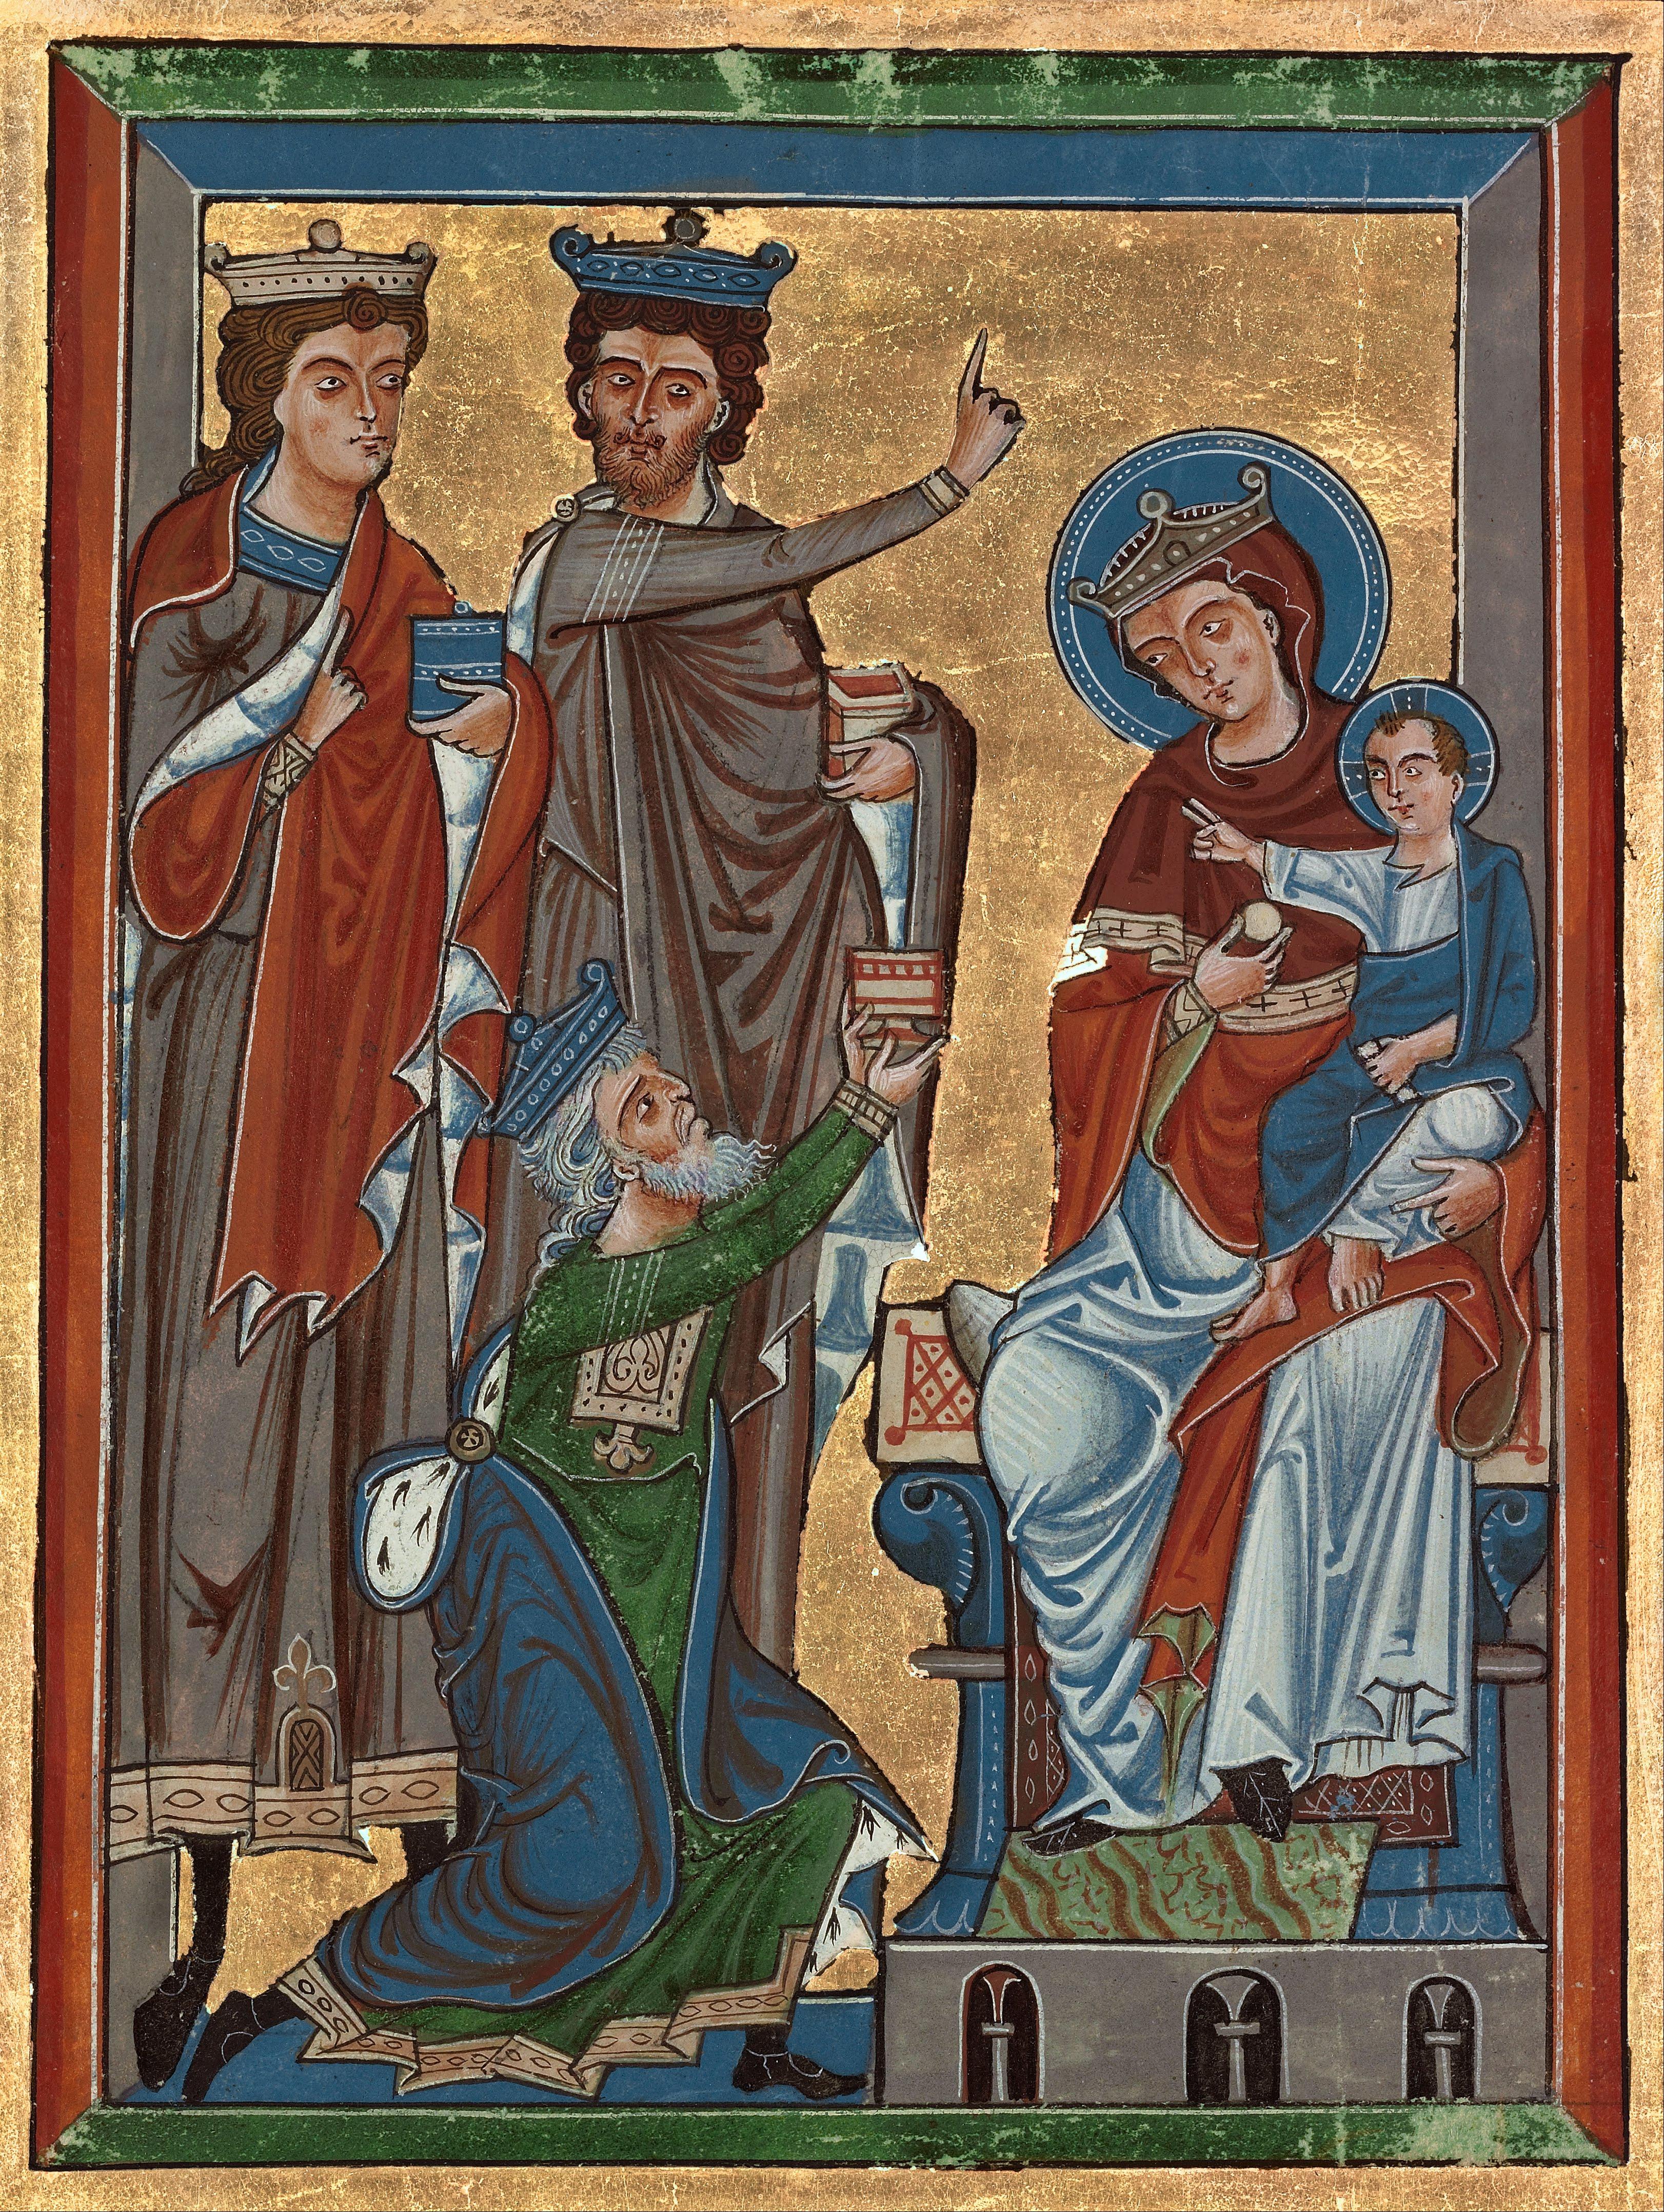 Adoration_of_the_Magi_-_Google_Art_Project_(6821891)